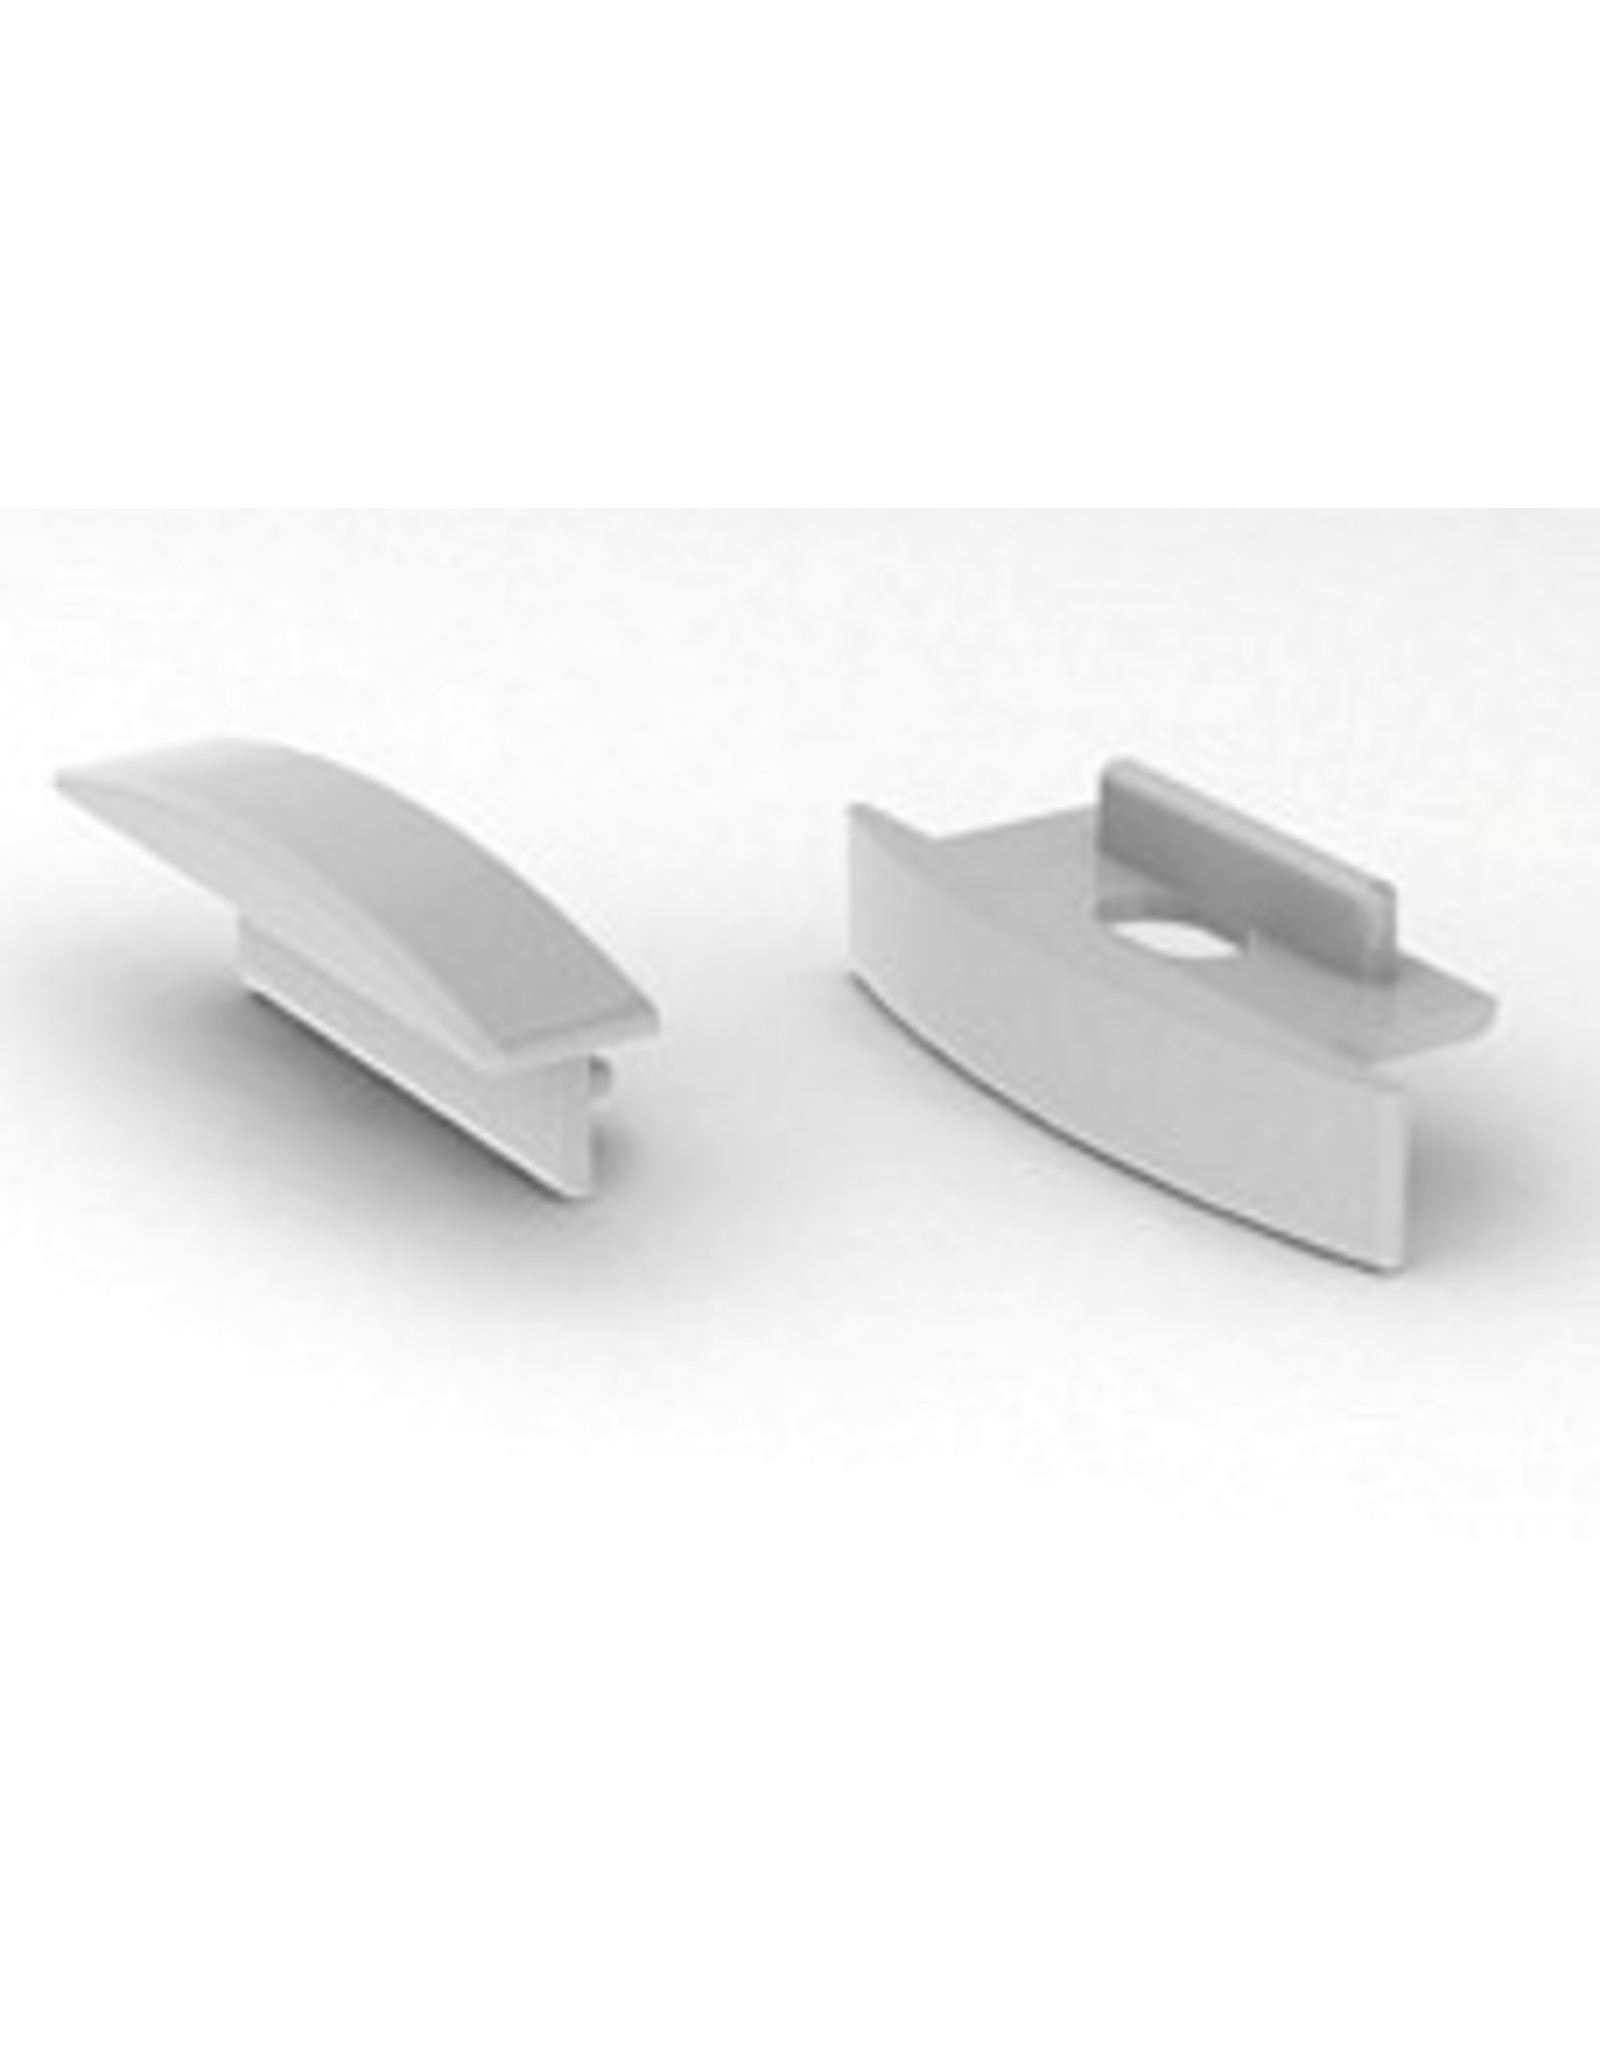 Lights Alu-profile Endcap W - 6mm - per piece